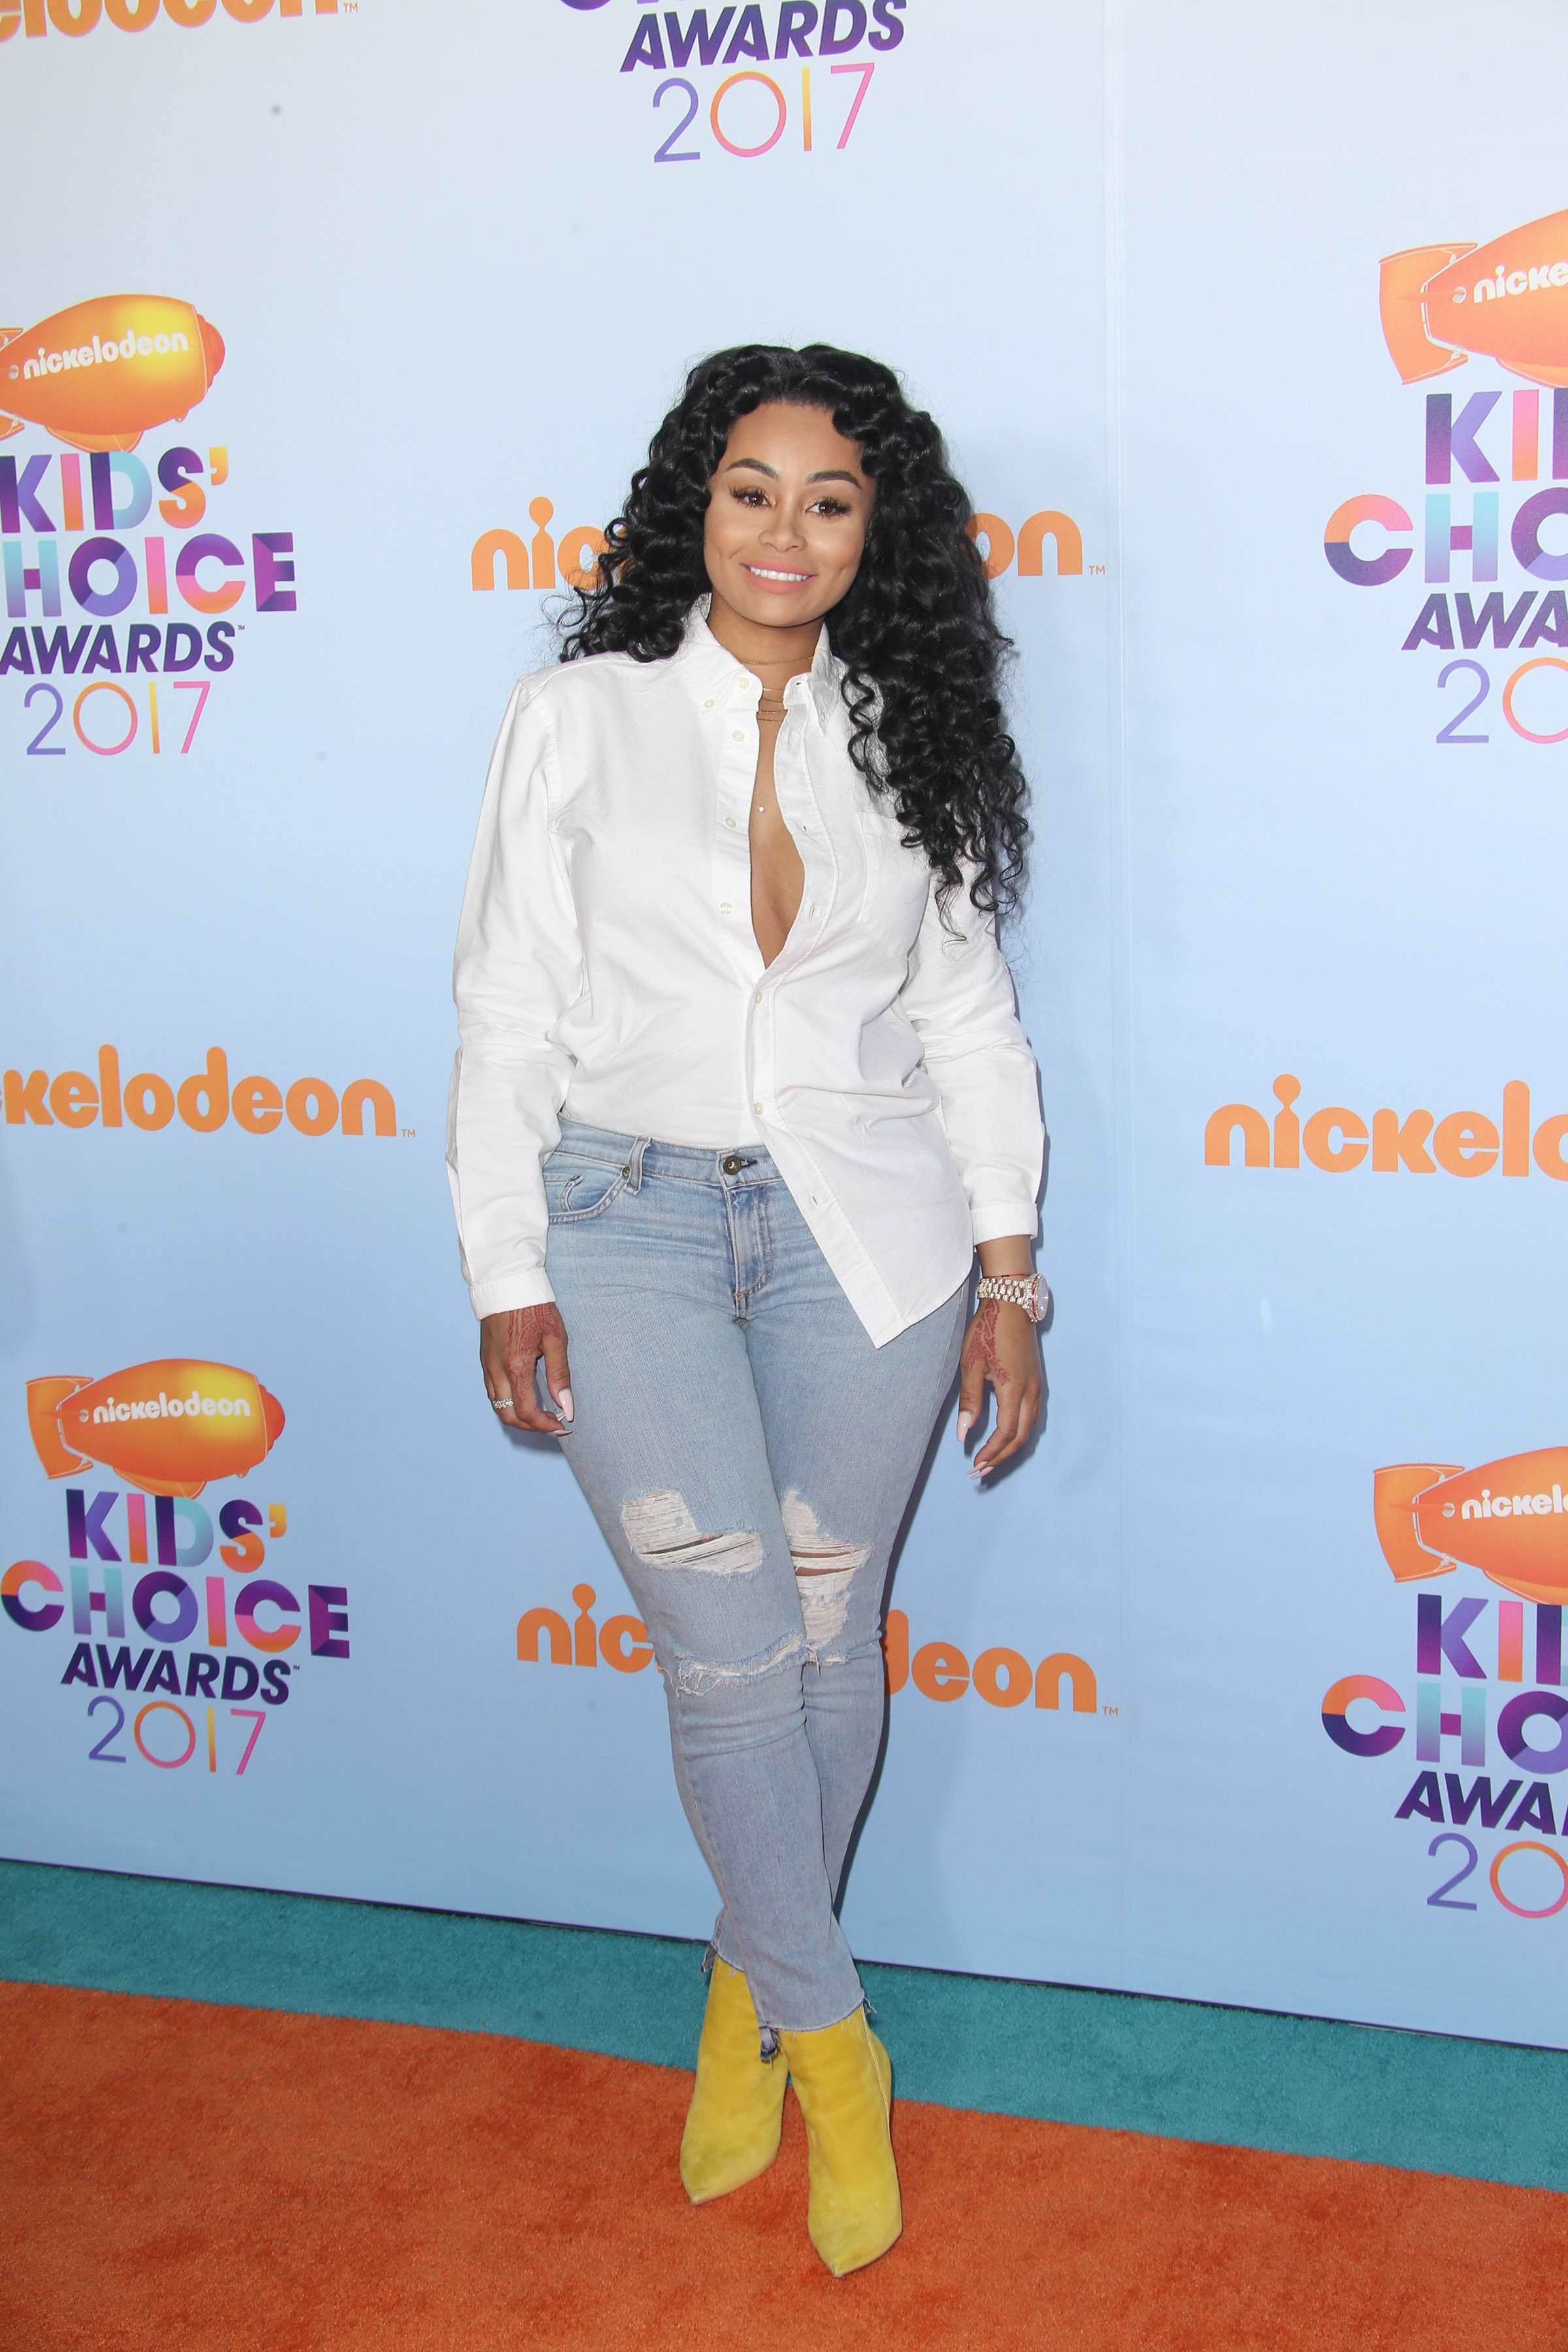 Blac Chyna's Mom Tokyo Toni Claims She's Not Allowed To See Dream Kardashian